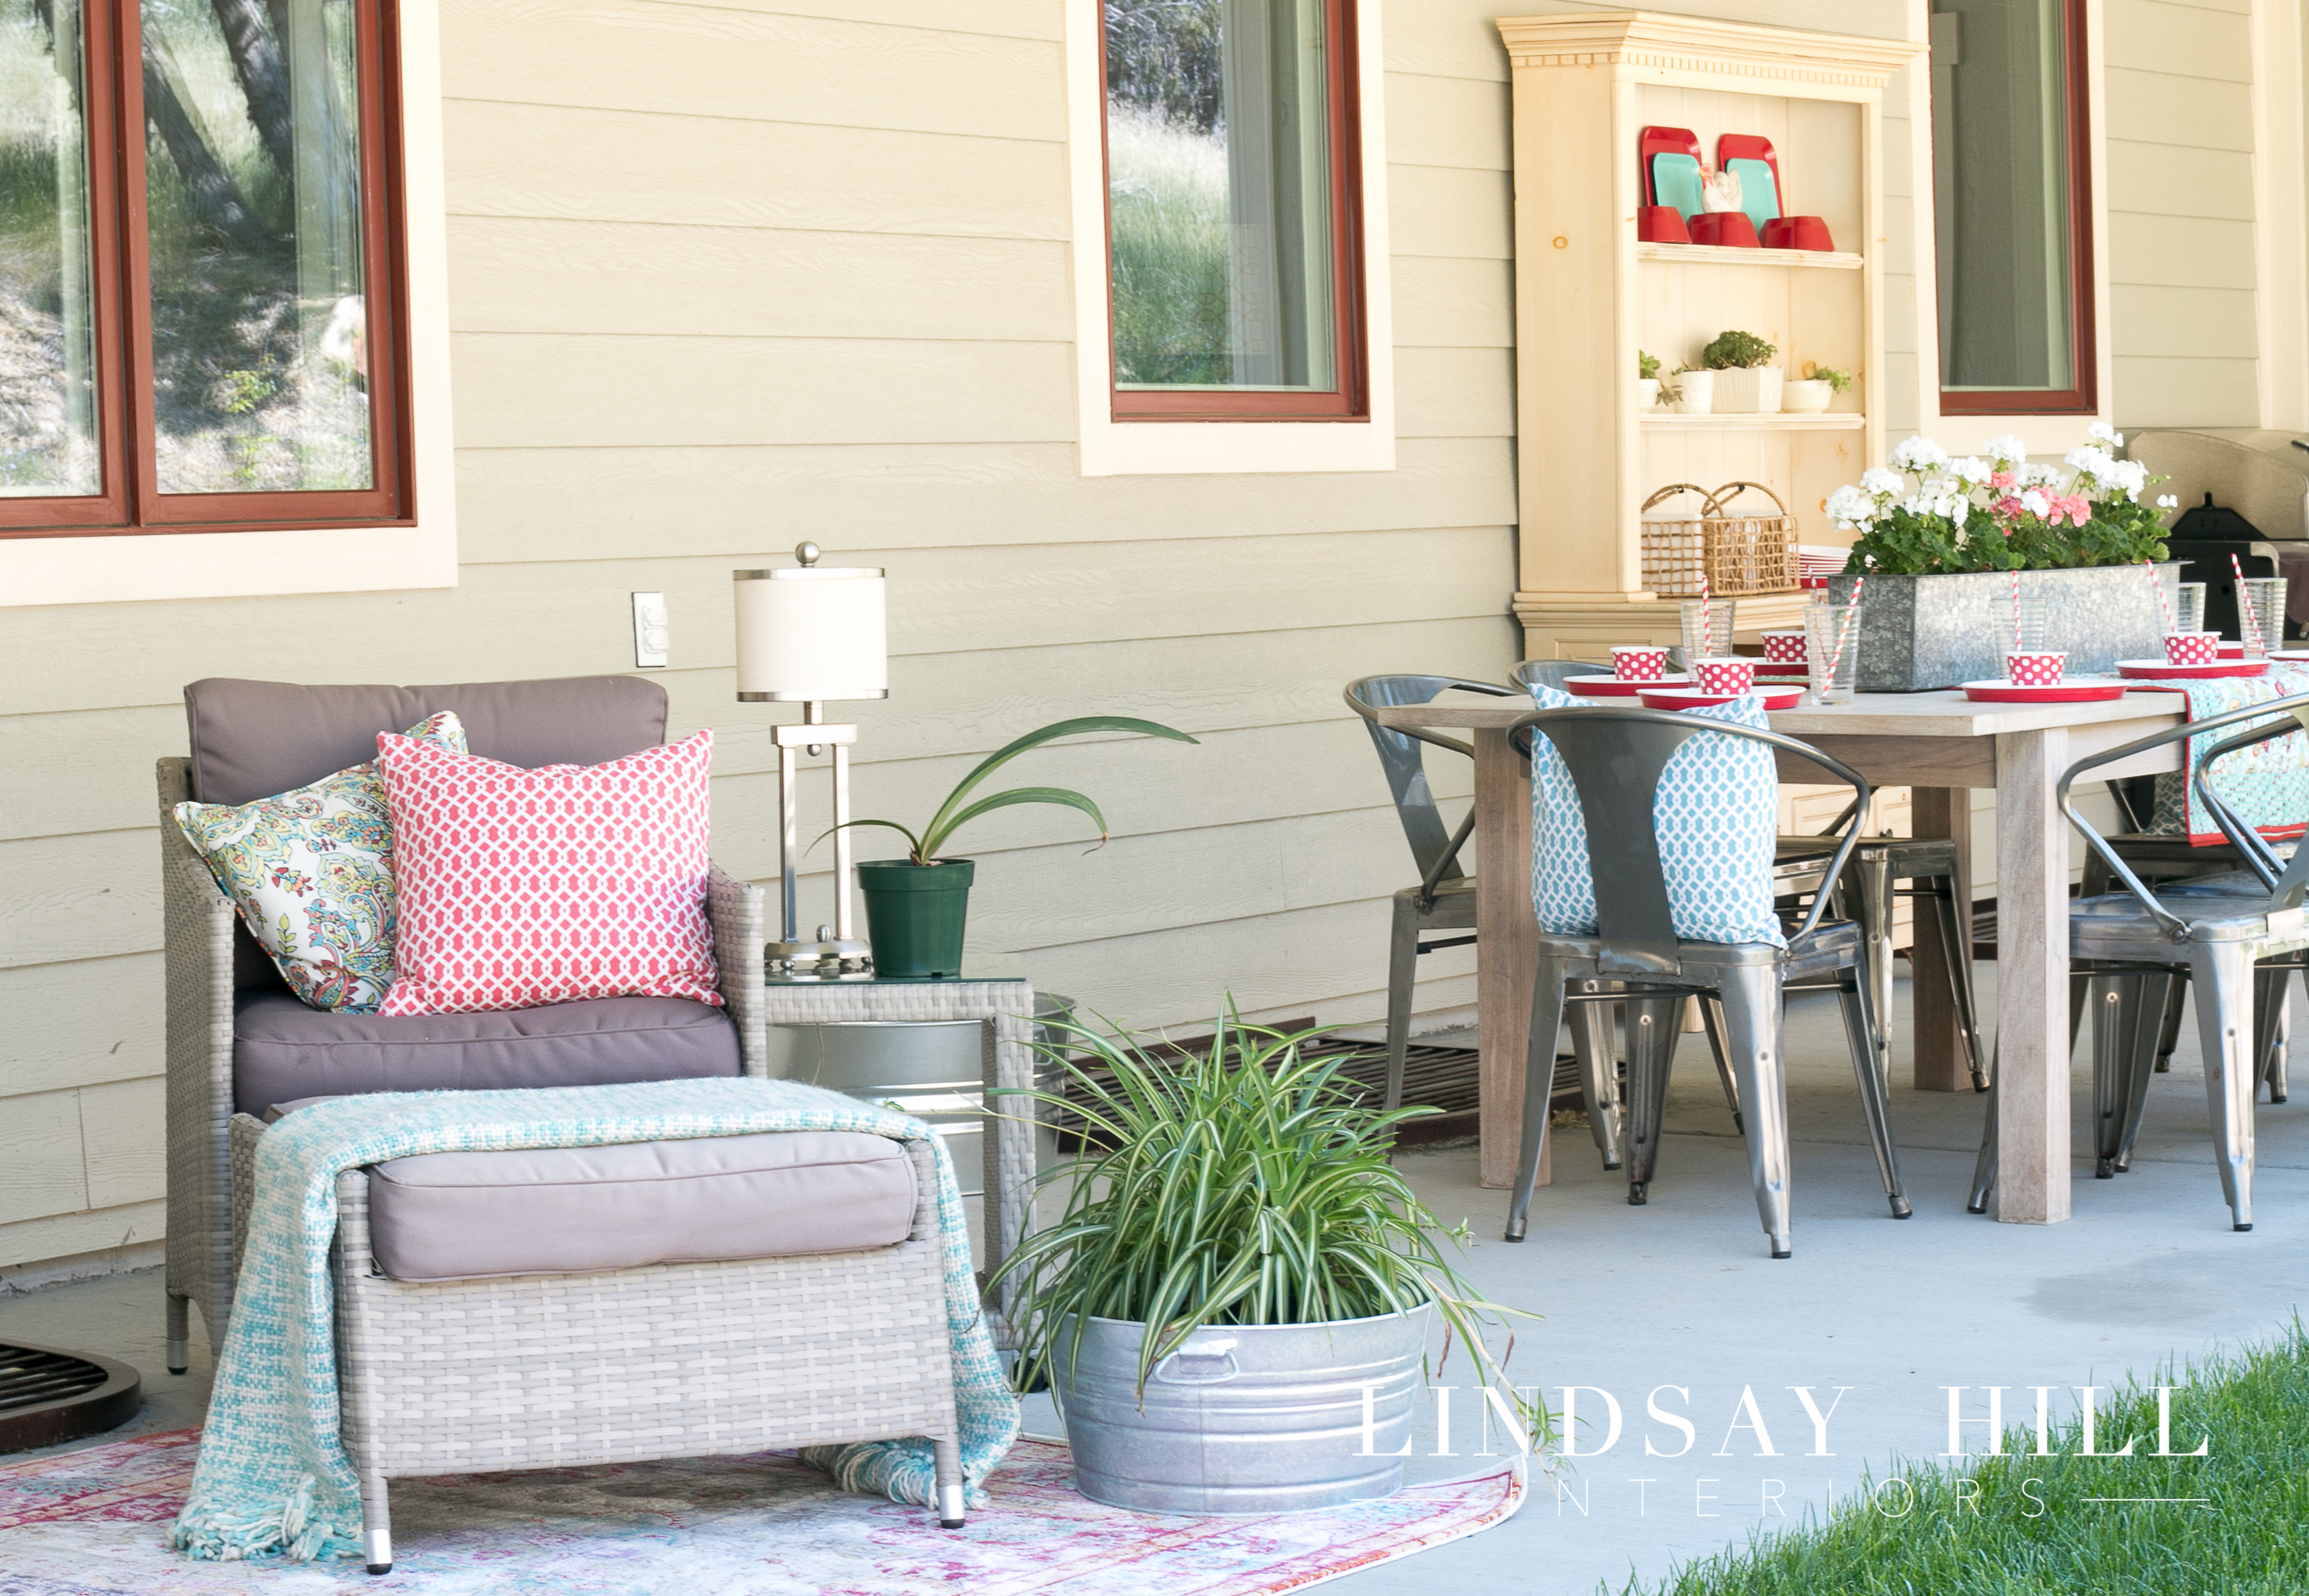 backyard patio ideas a giveaway lindsay hill interiors